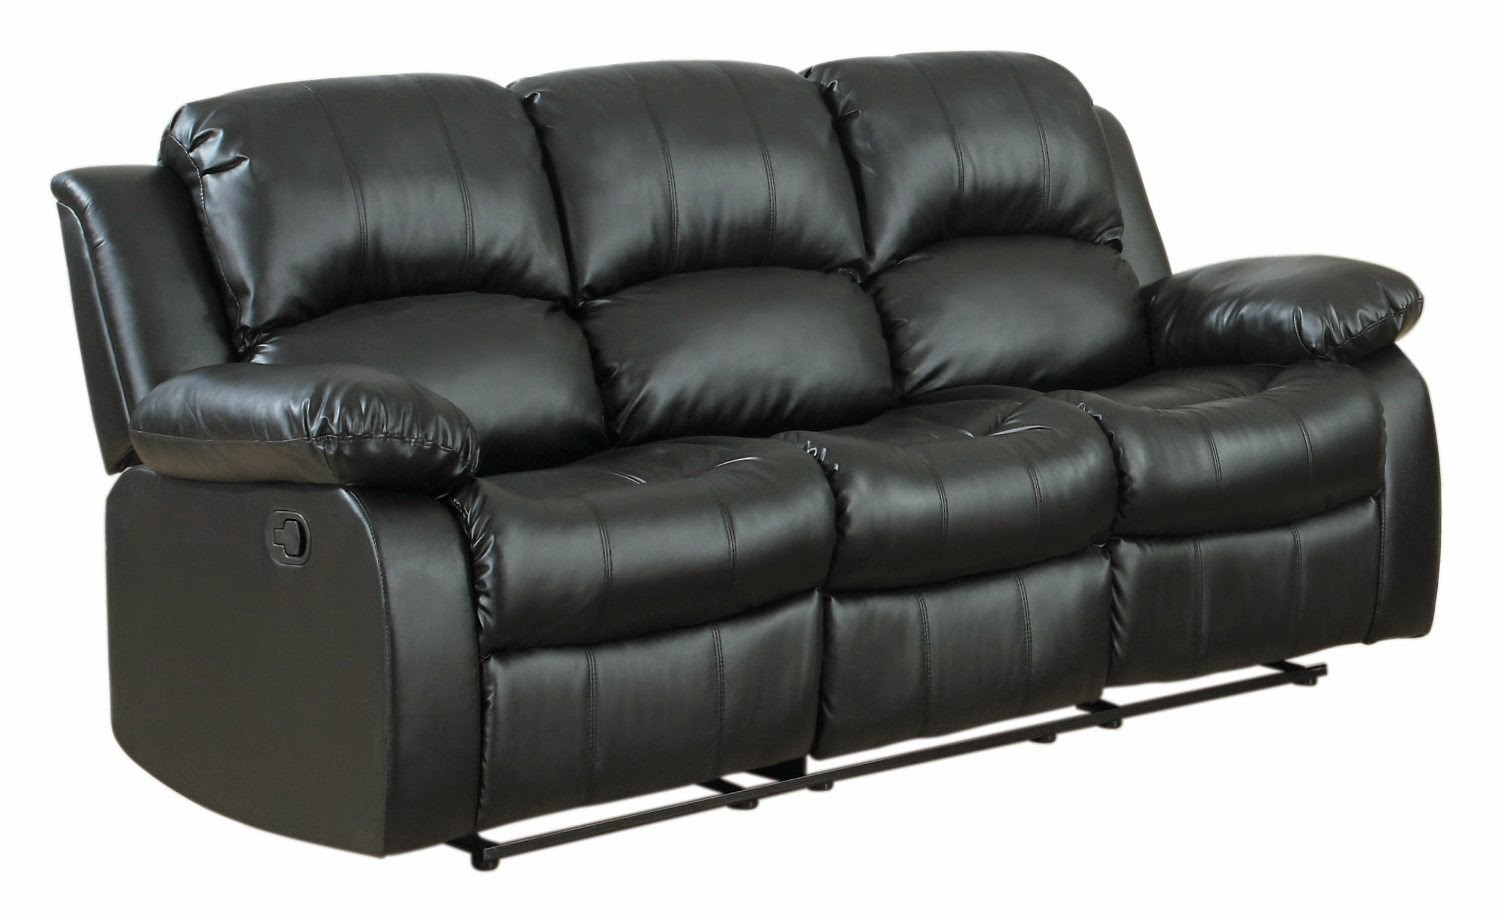 black leather reclining couch and loveseat black leather reclining